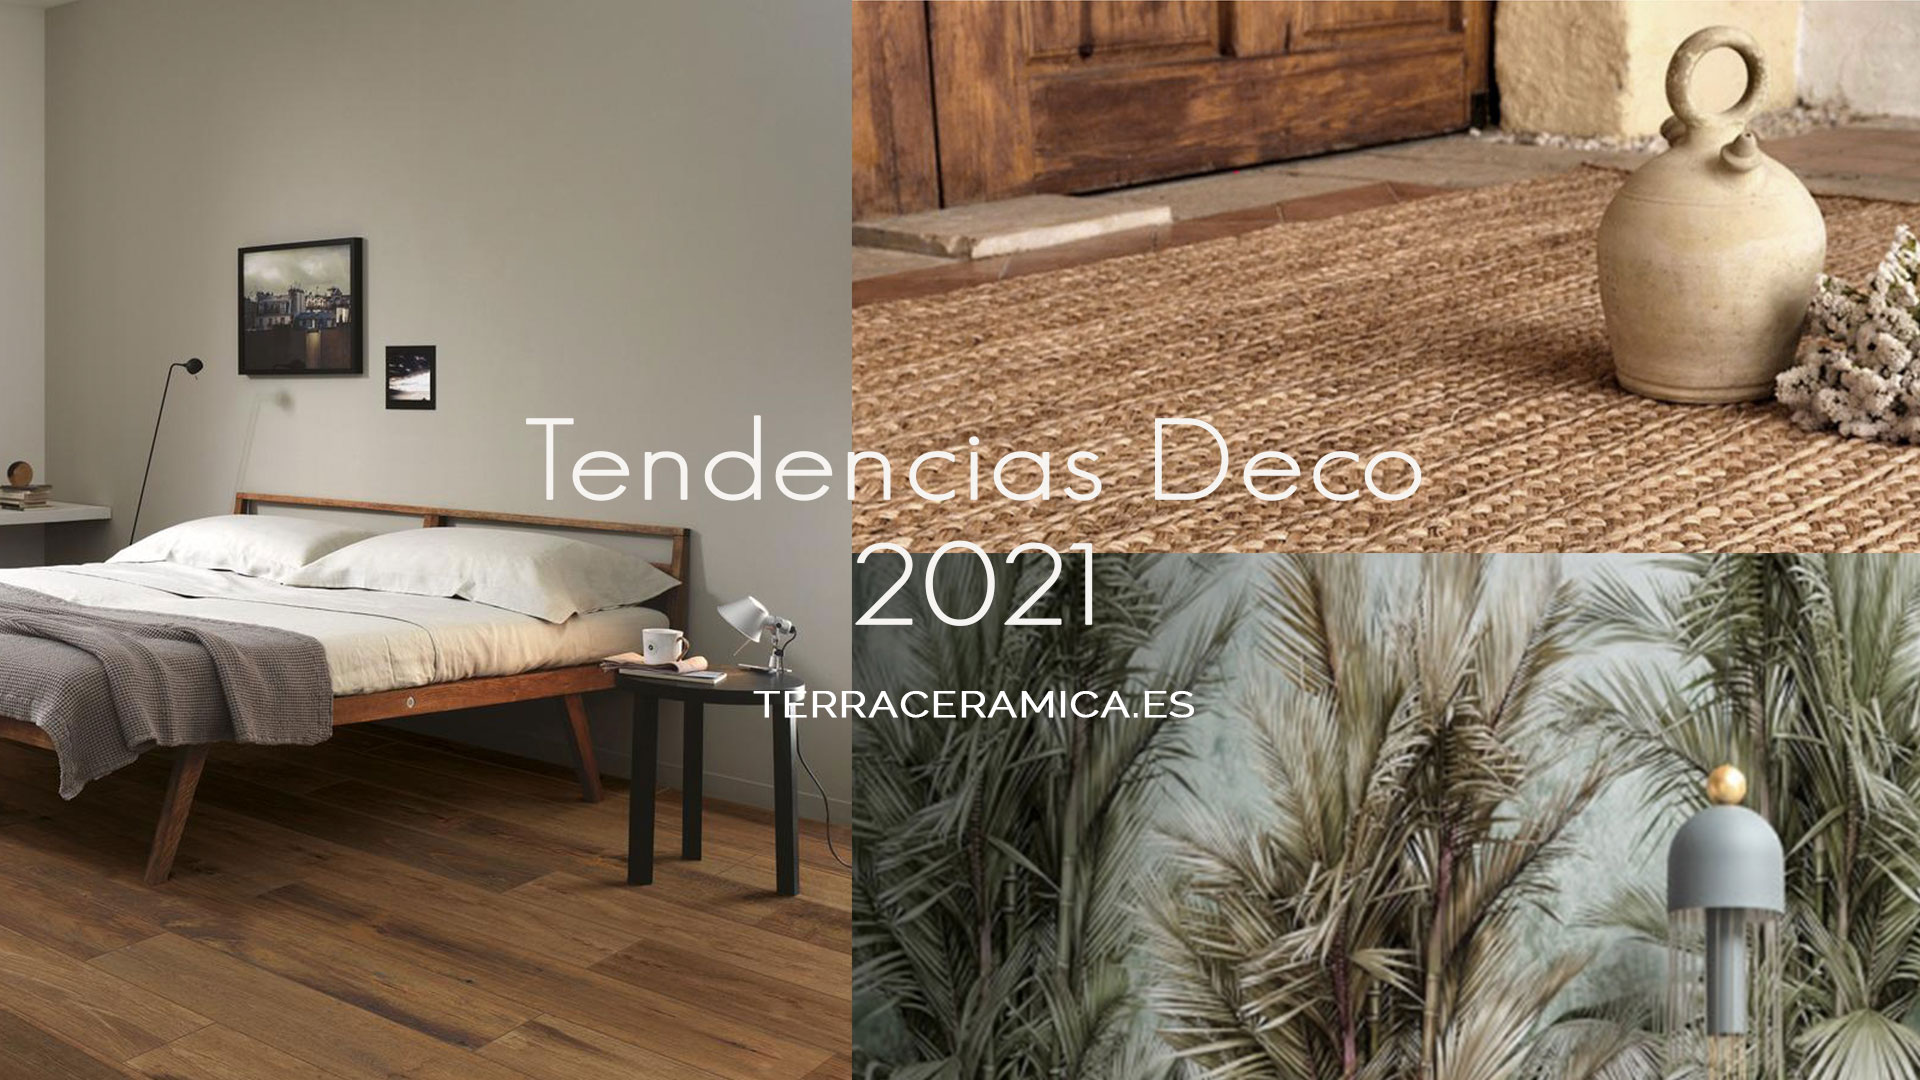 Tendencias decorativas para el 2021 a tan solo un click.